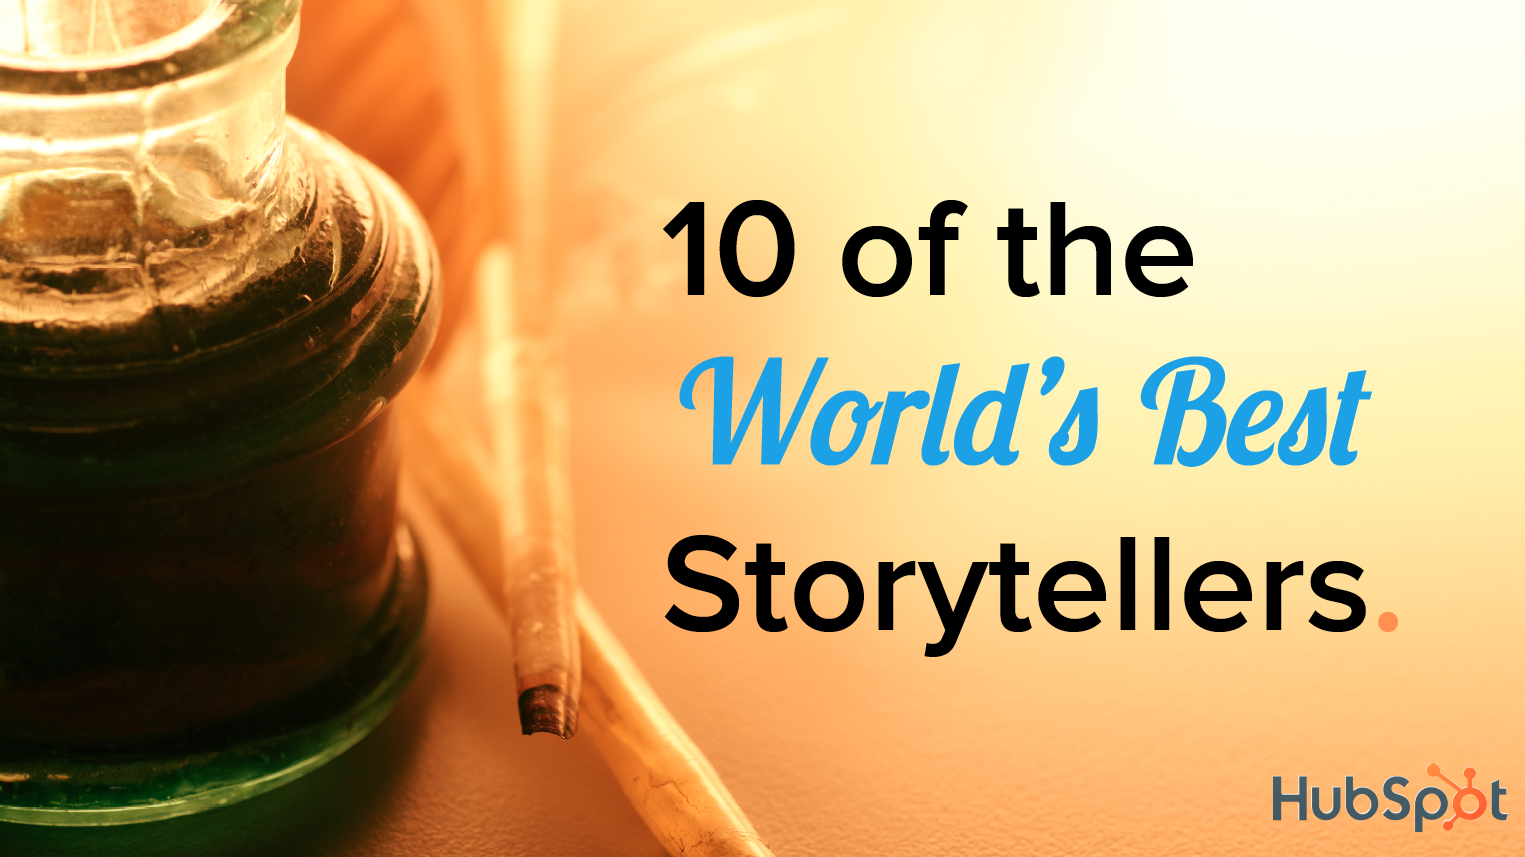 10 of the World's Best Storytellers [SlideShare]